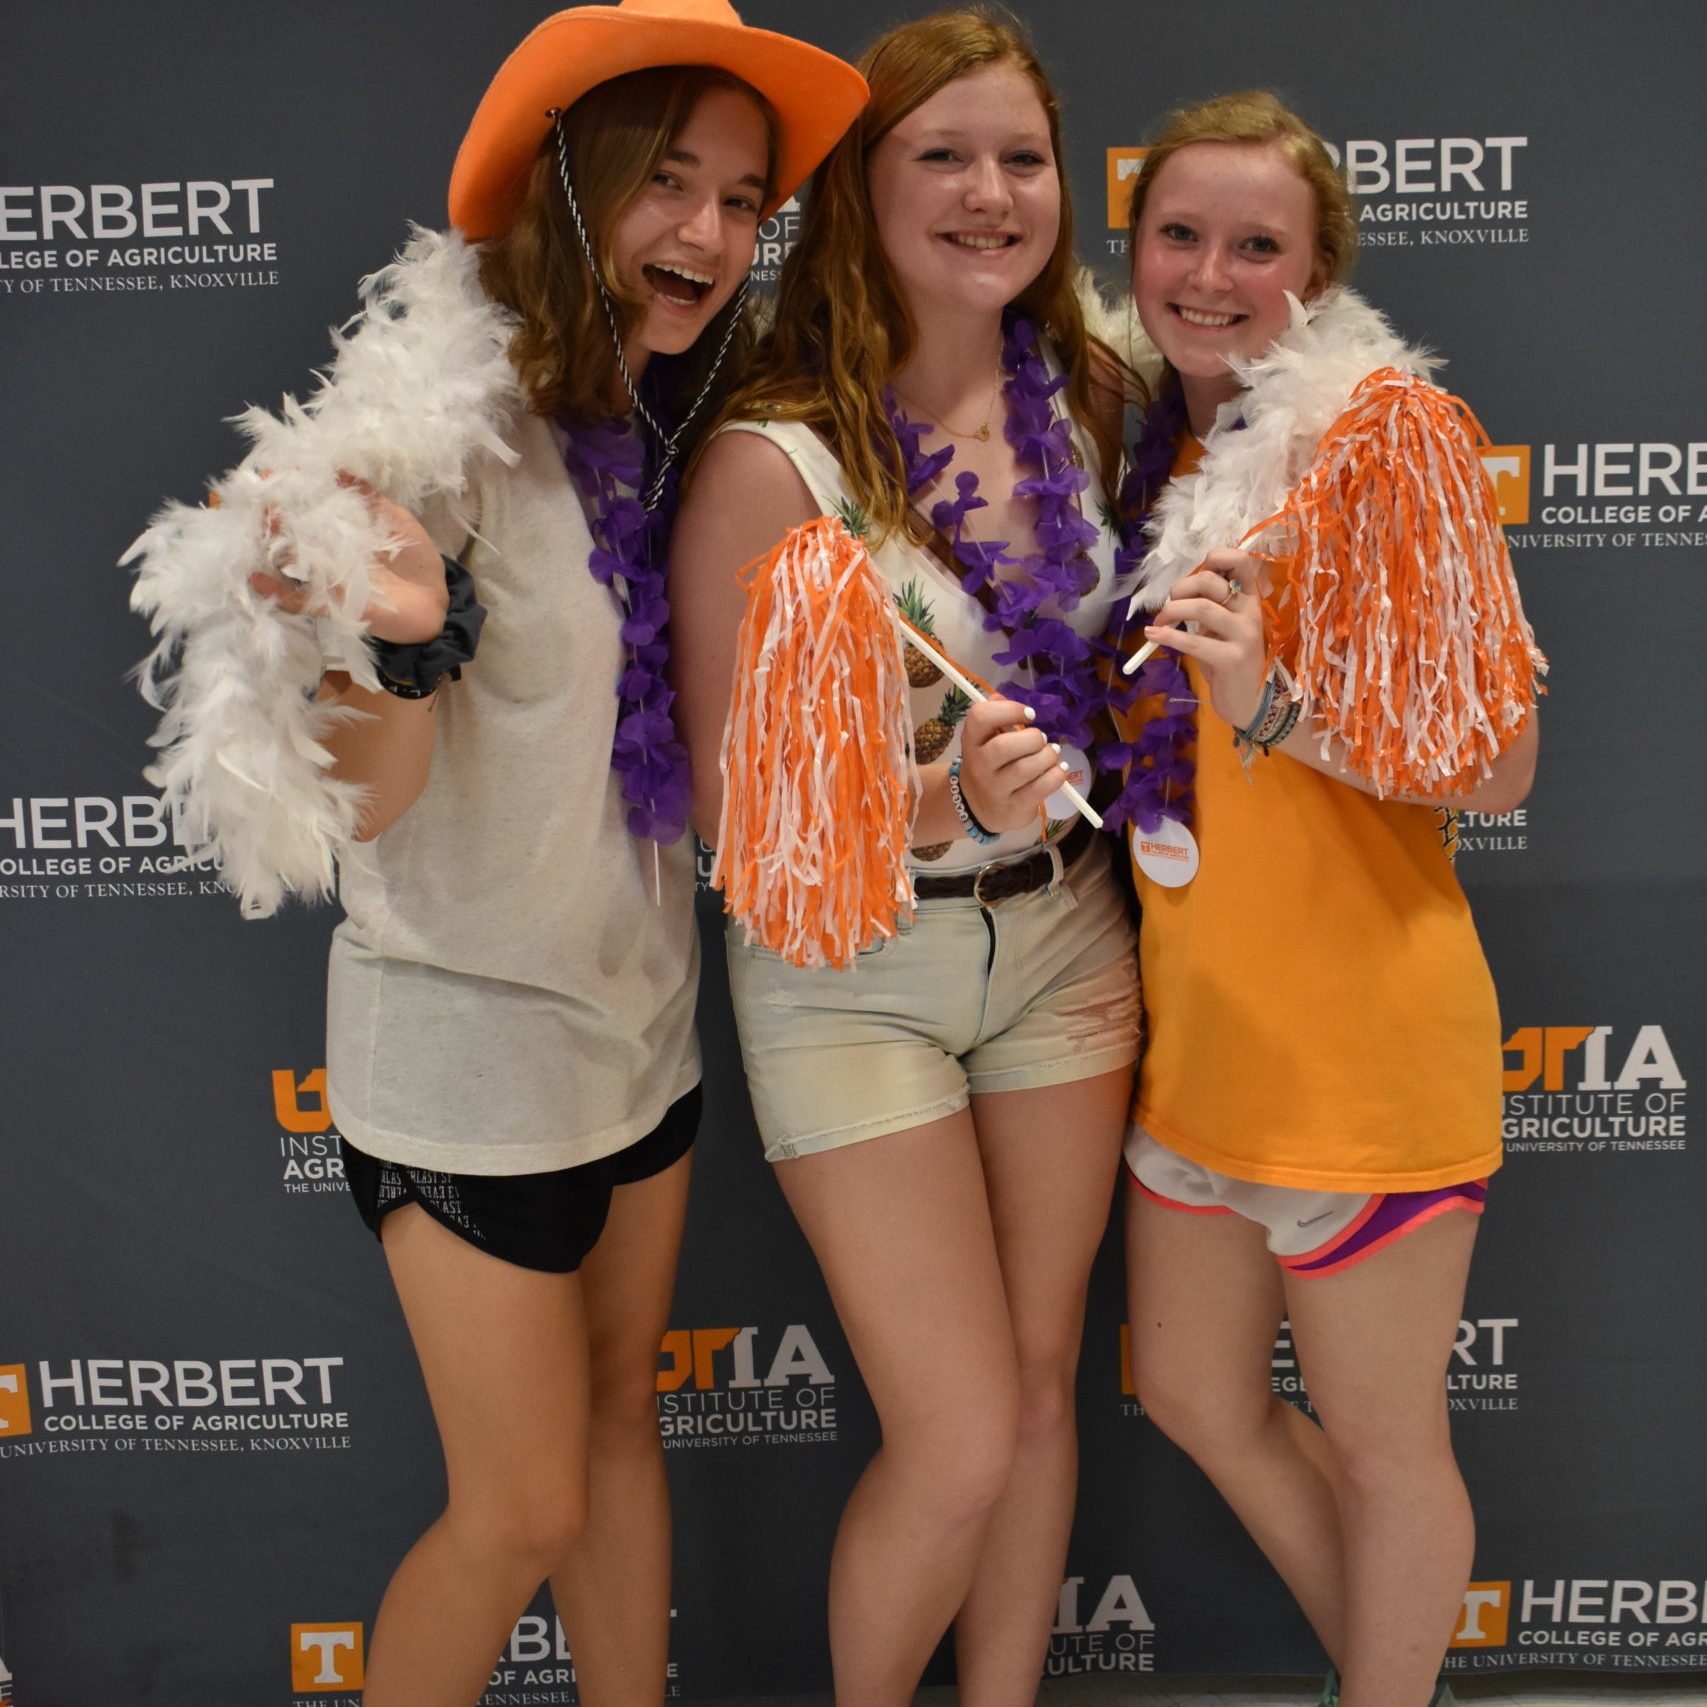 Students dressed in orange and white in front of Herbert College of Agriculture backdrop